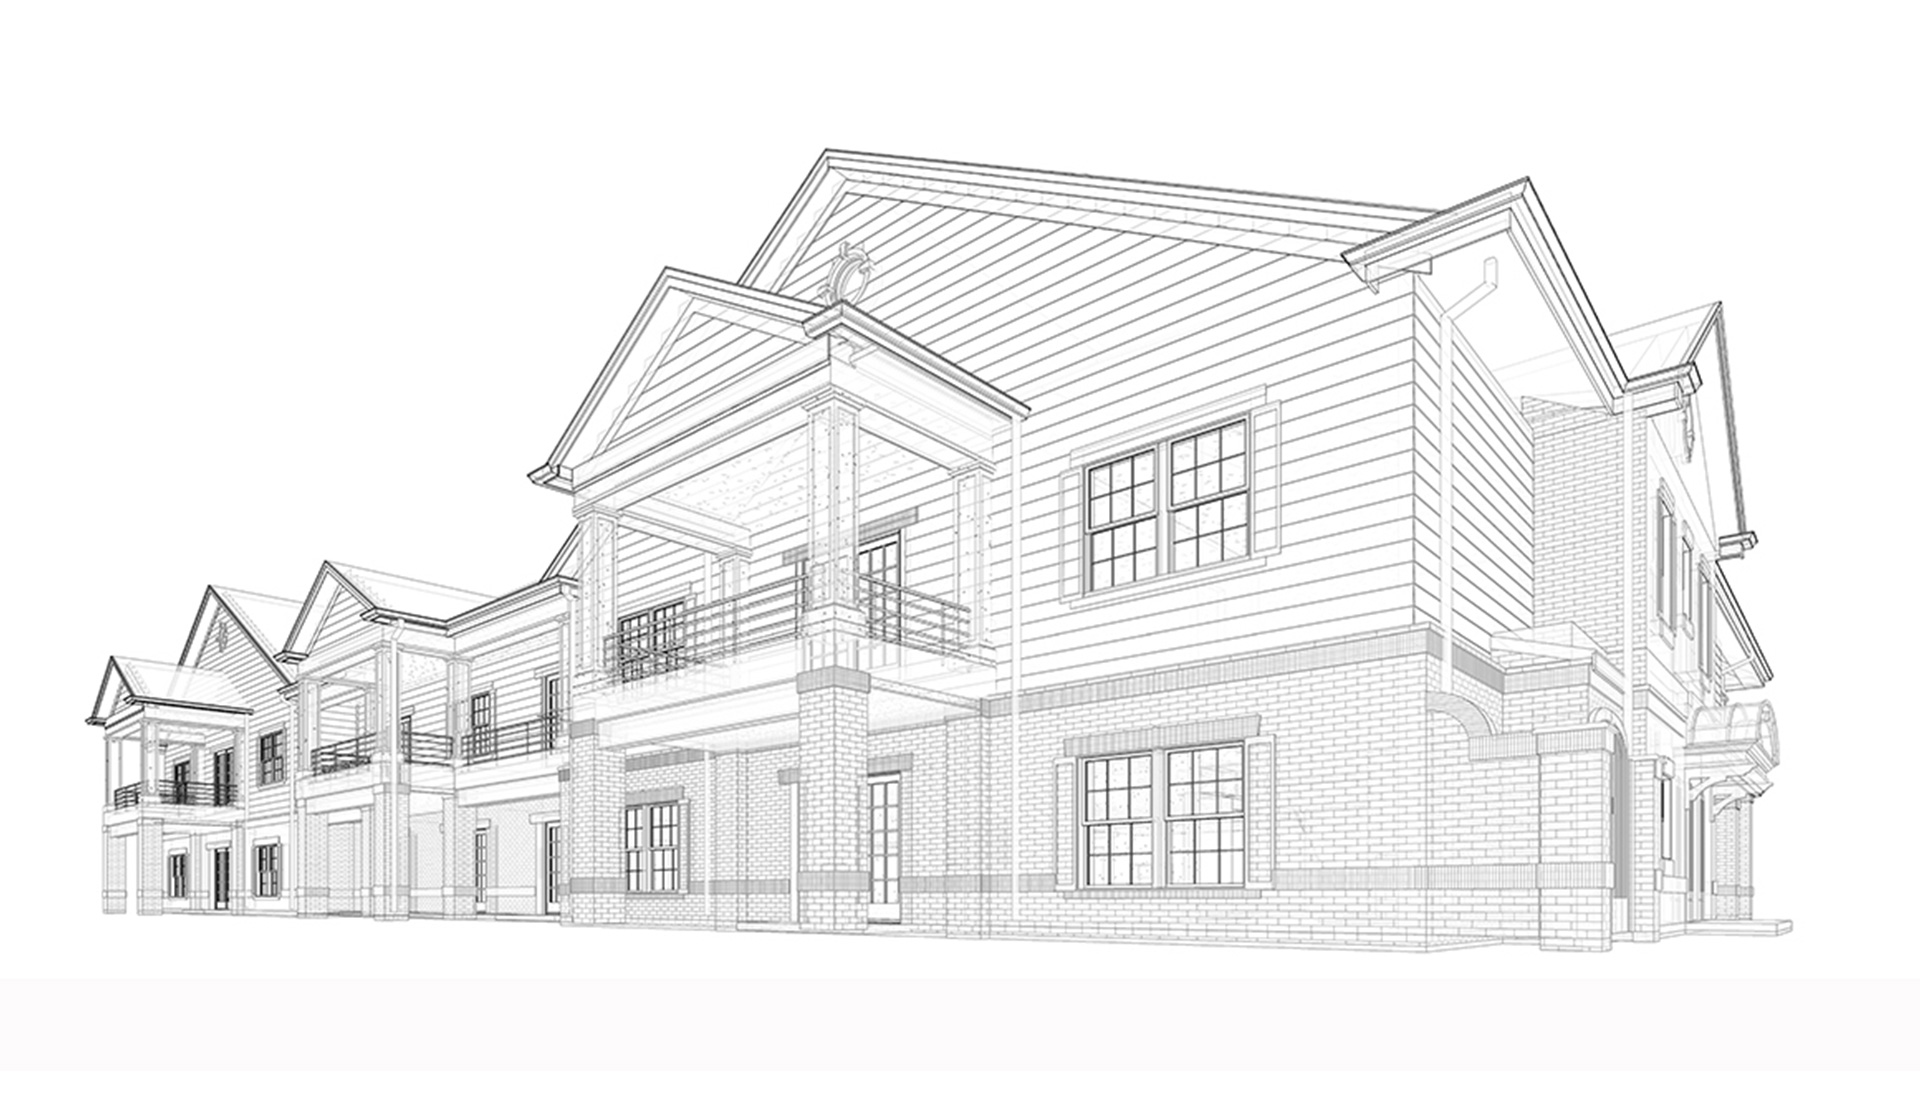 Wireframe-Architectural-Revit-3D-Model--Residence-Home-Project-by-United-BIM